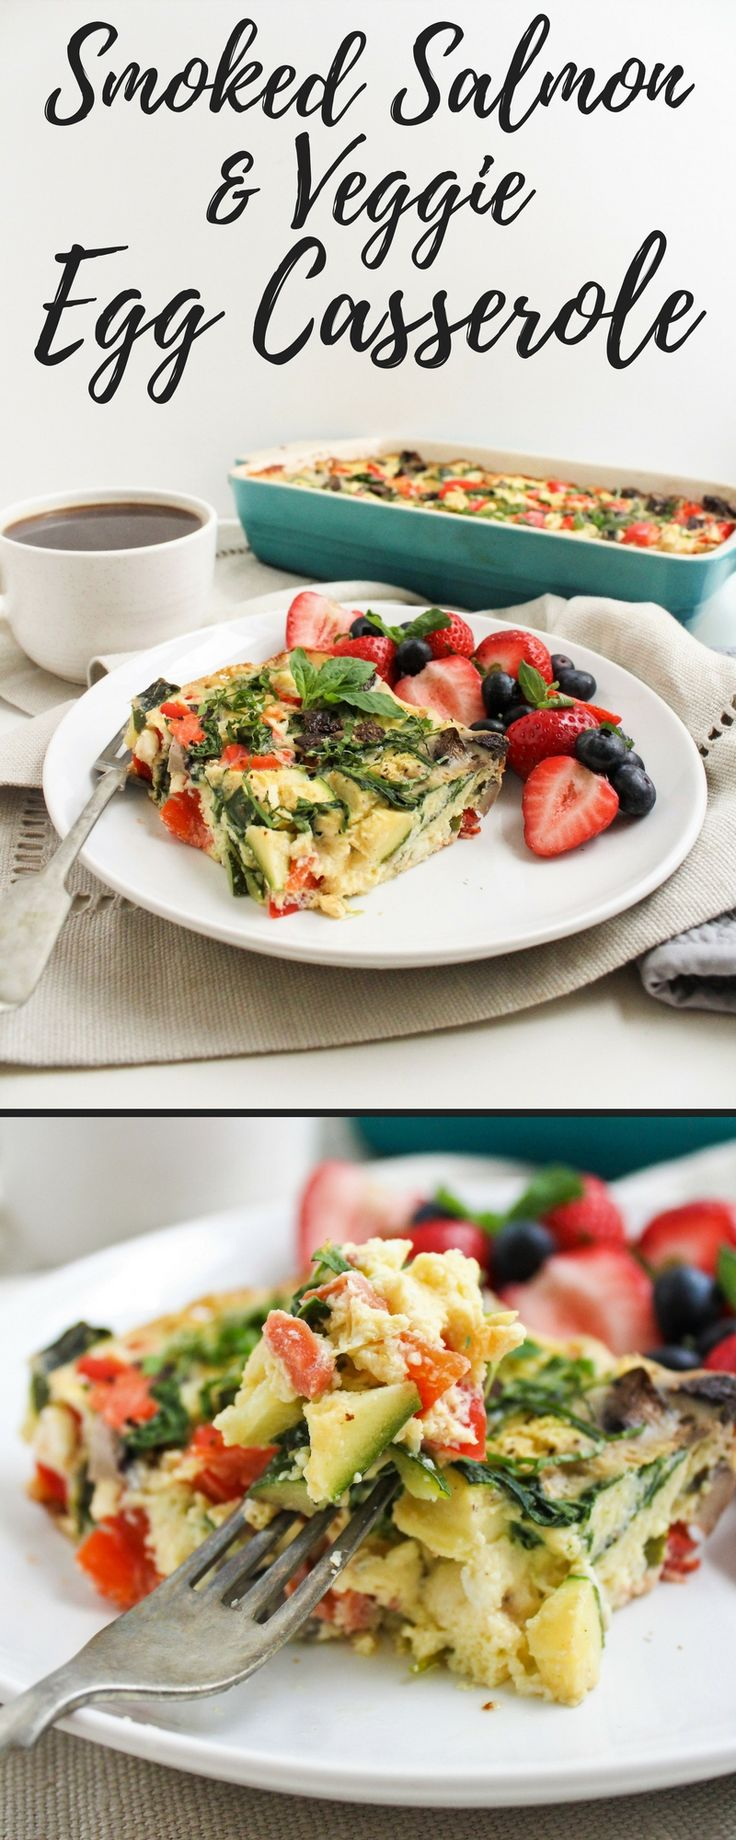 Smoked Salmon & Veggie Egg Casserole - SO easy to make, yet so flavorful and delicious! Perfect for a brunch party or easy make-ahead breakfast! | easy brunch ideas | healthy brunch recipes | healthy make ahead breakfast | gluten free breakfast ideas | healthy breakfast recipes |